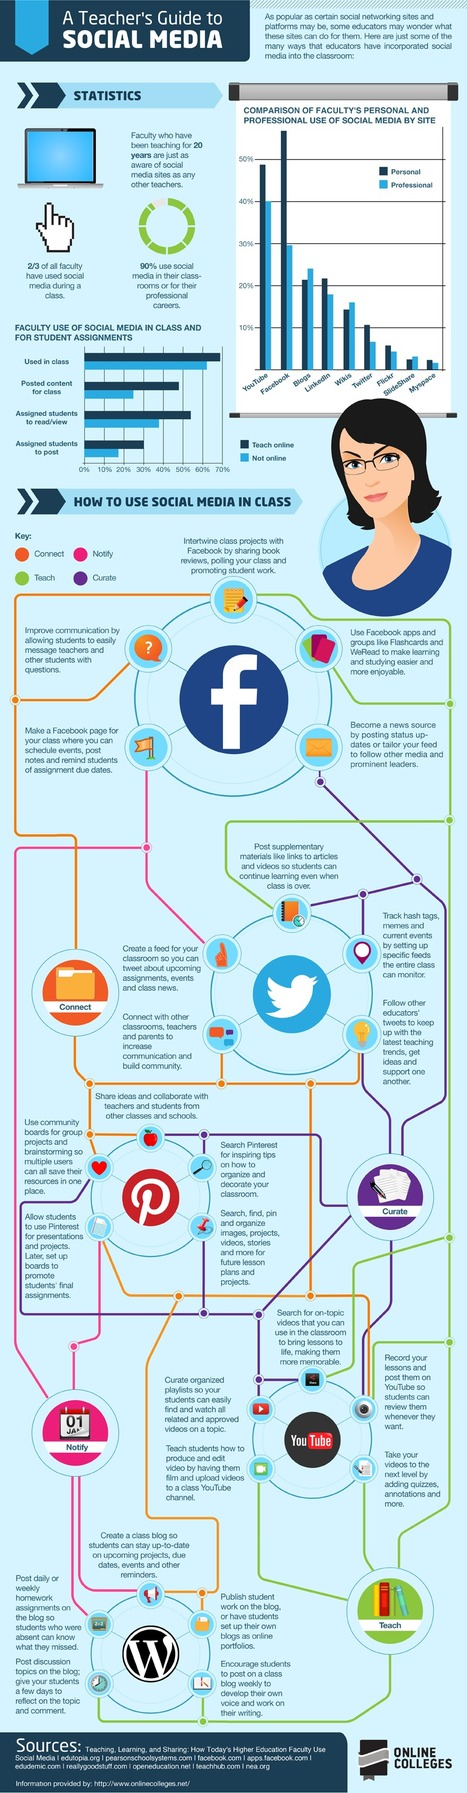 The Teacher's Visual Guide To Social Media | onlinecolleges.net | EDTECH - DIGITAL WORLDS - MEDIA LITERACY | Scoop.it